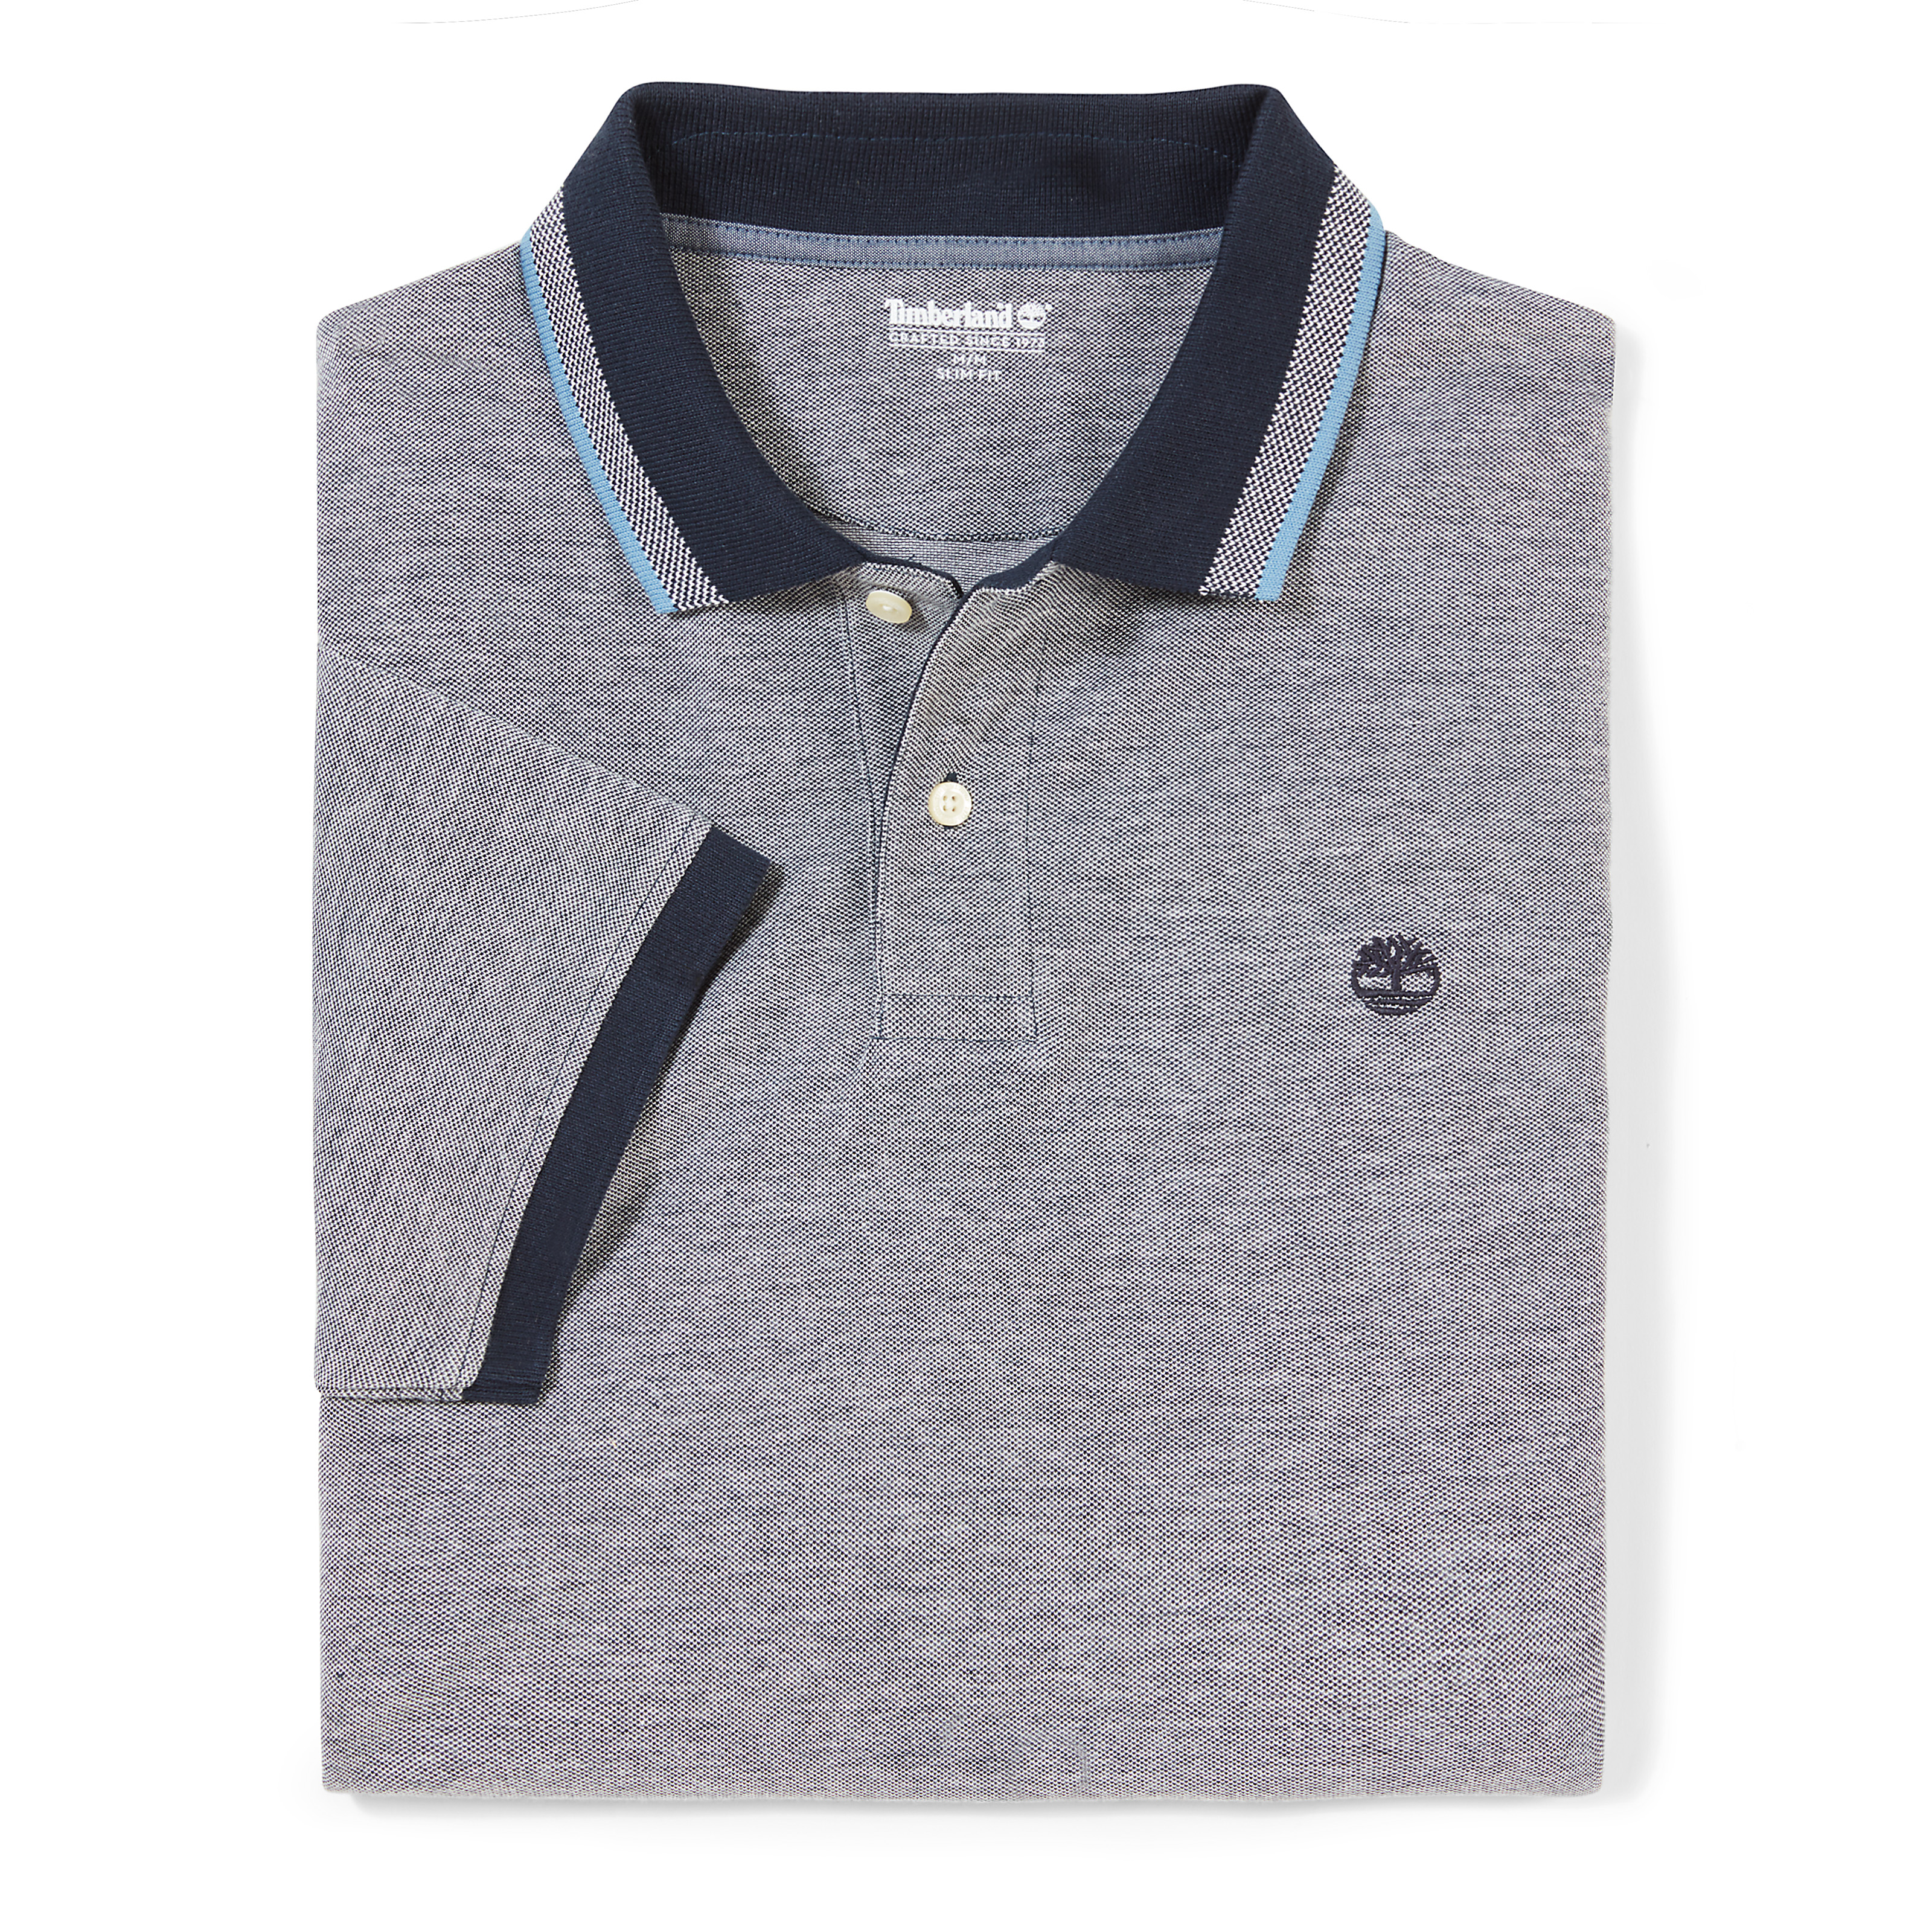 97e6524d SS Millers River LW Pique Oxford Polo Slim